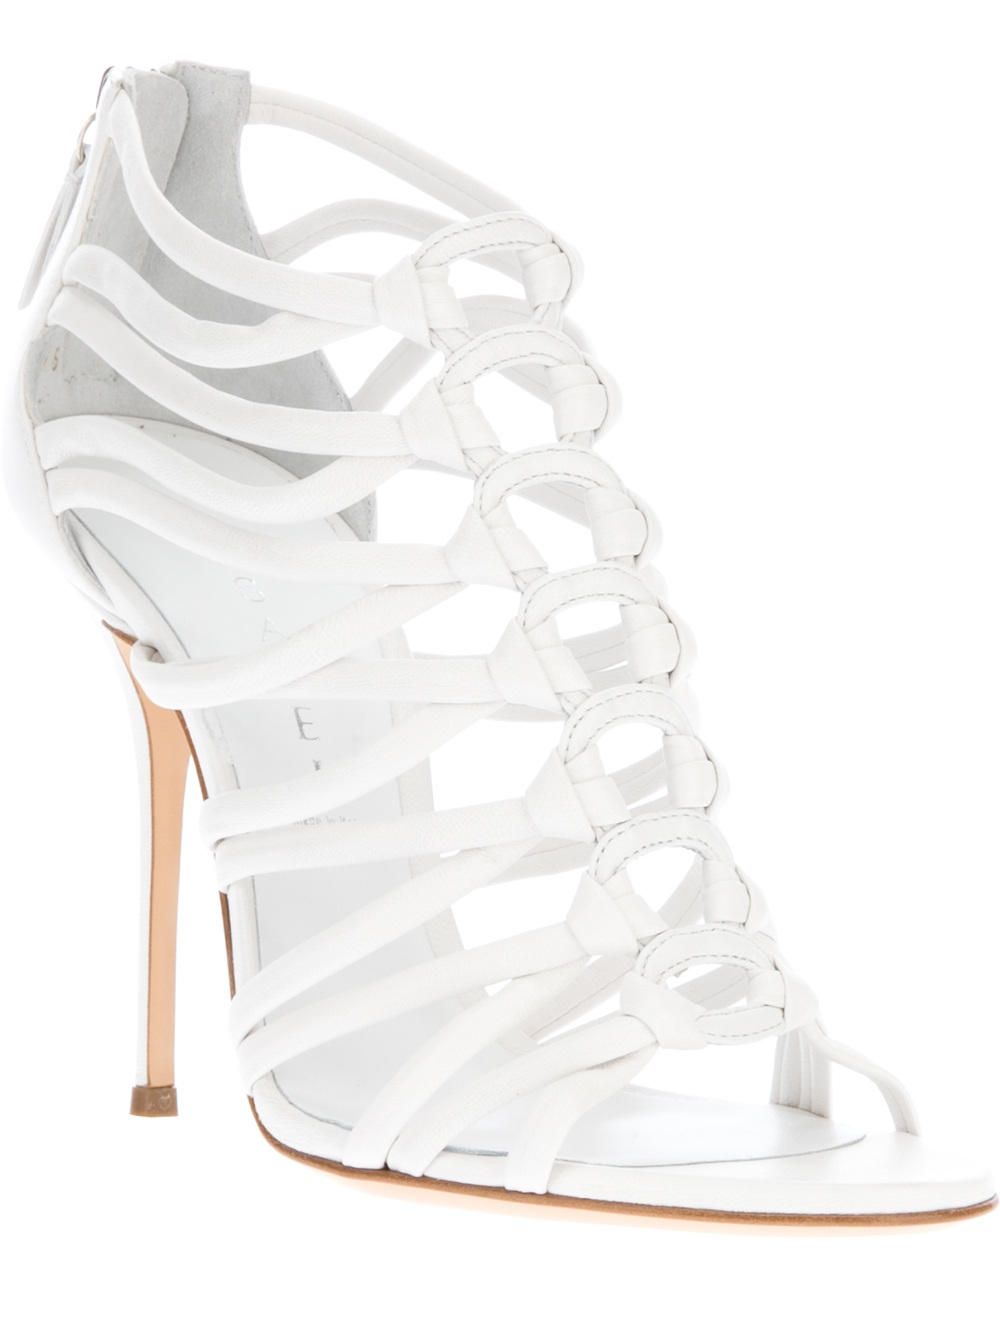 5523ba258 Lyst - Casadei Strappy Stiletto Sandal in White